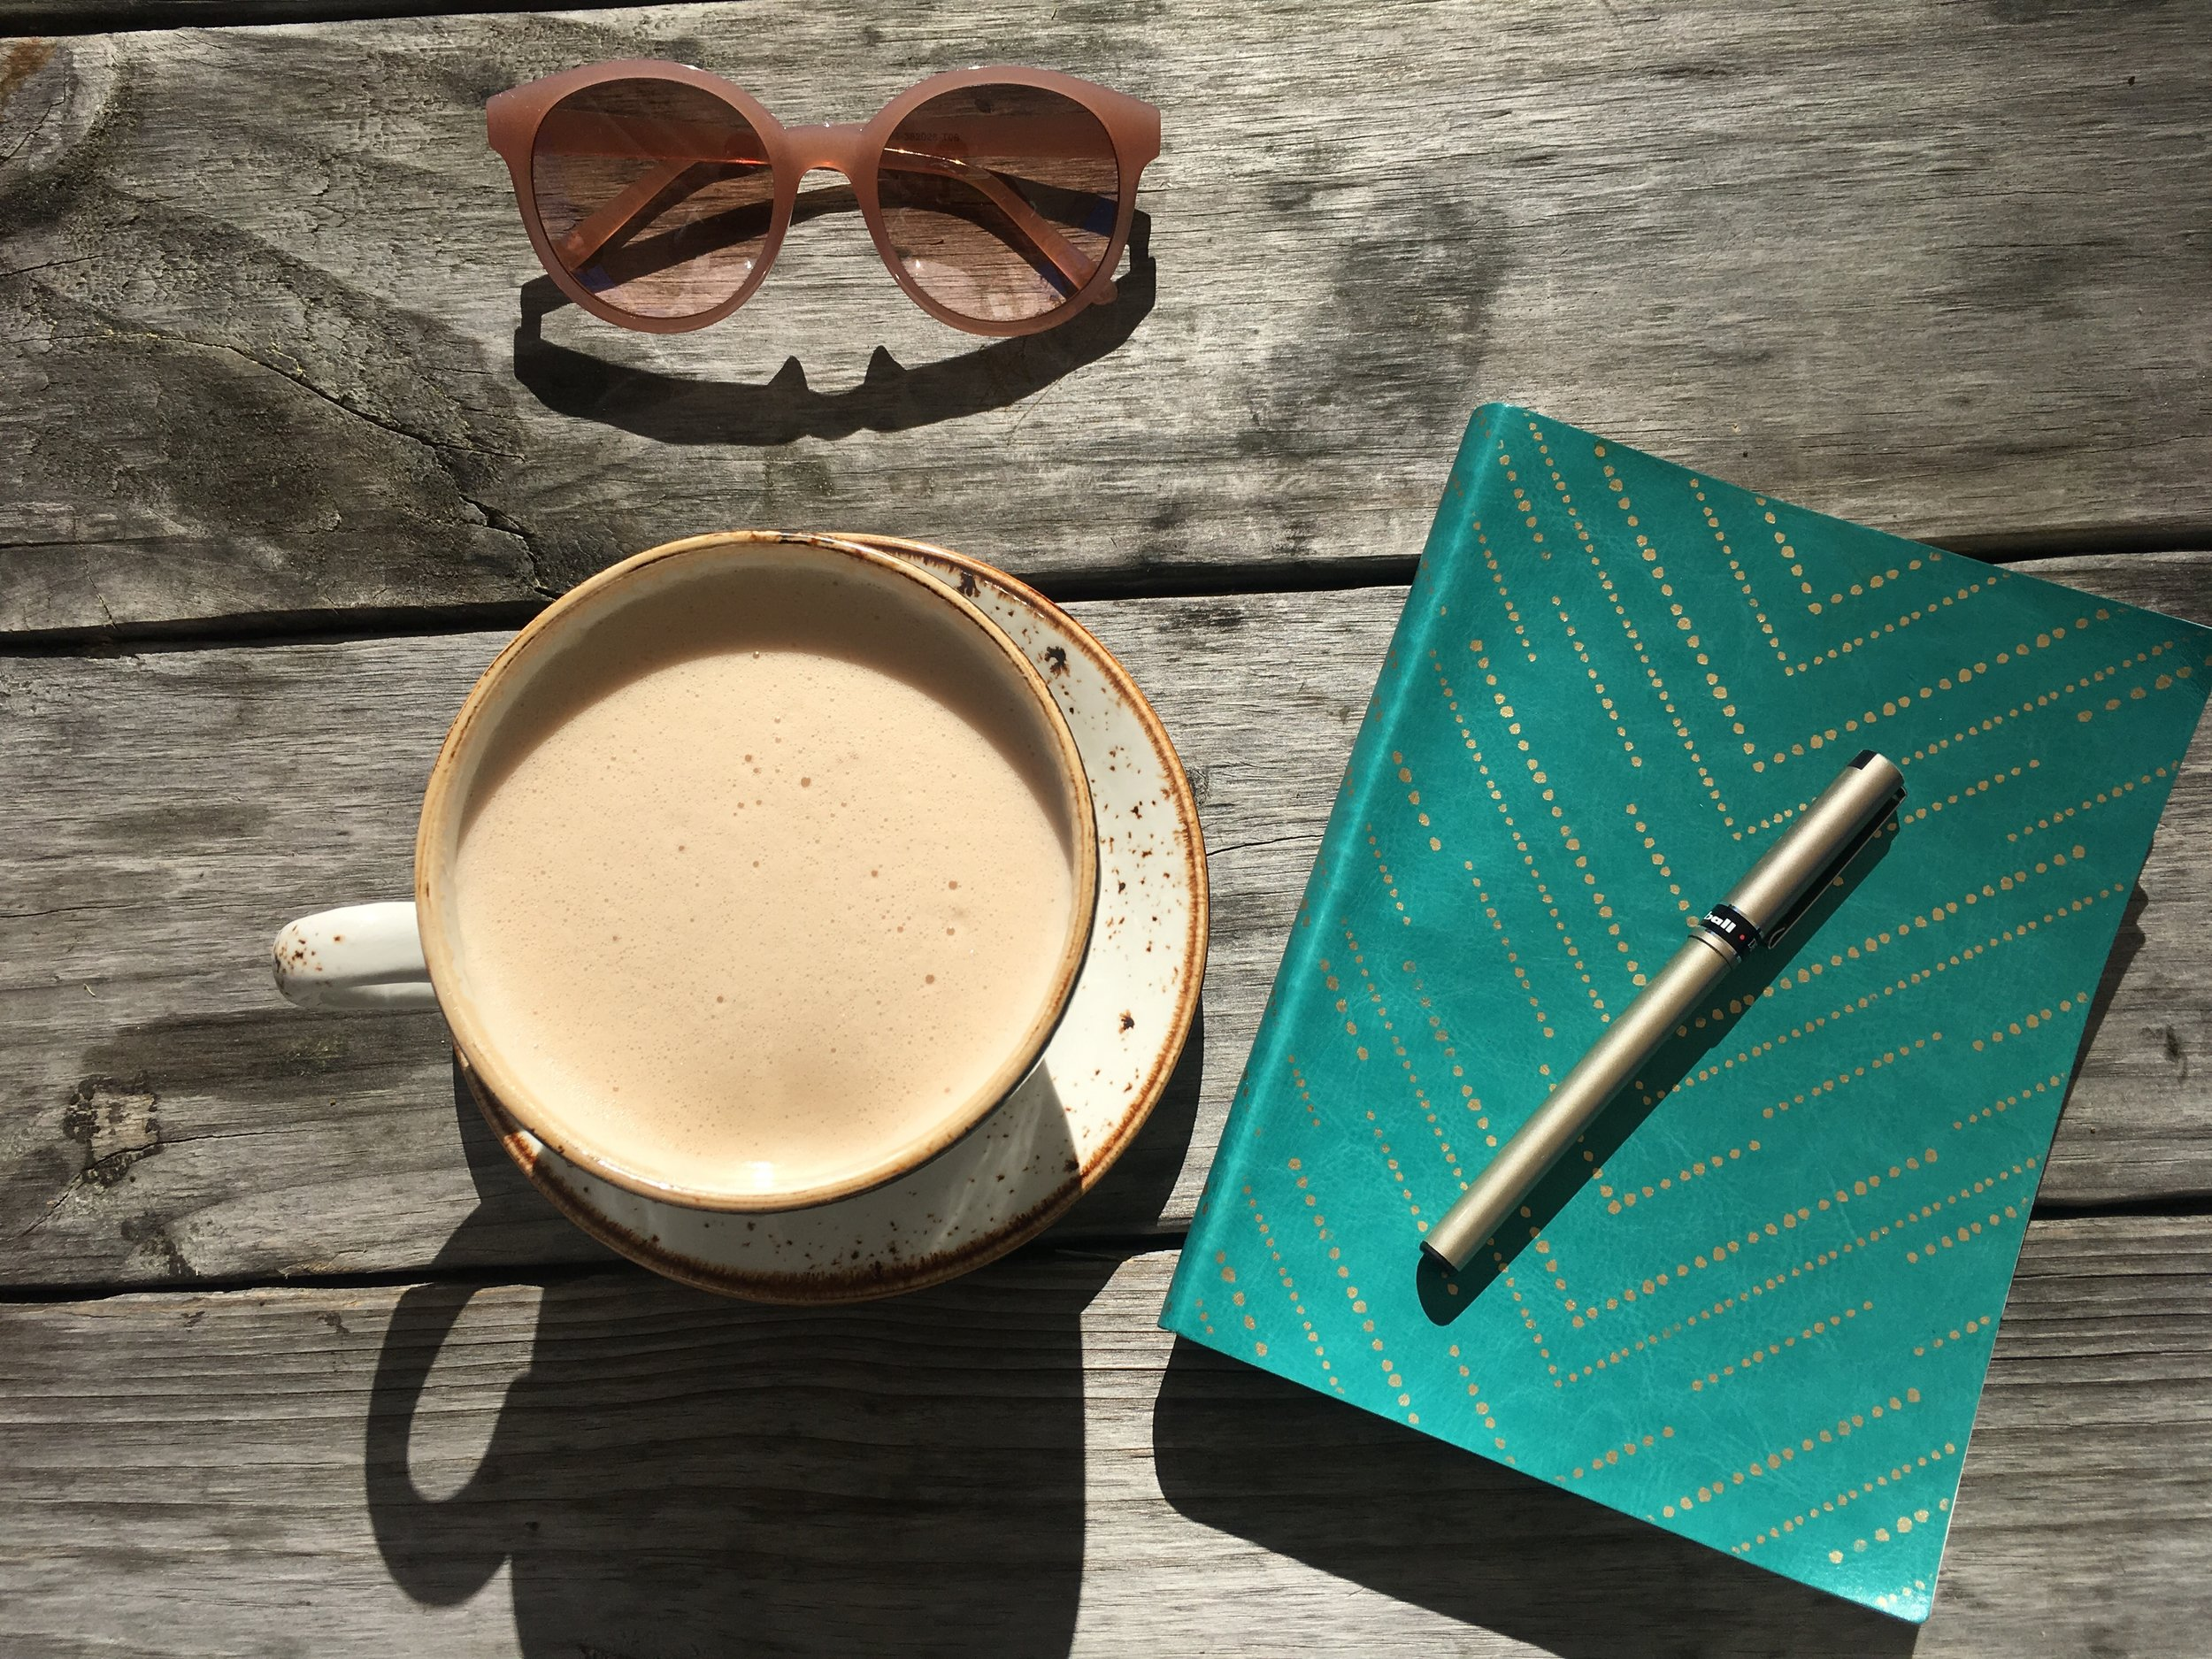 Sunglasses, Chai tea, notebook and pen on wood table